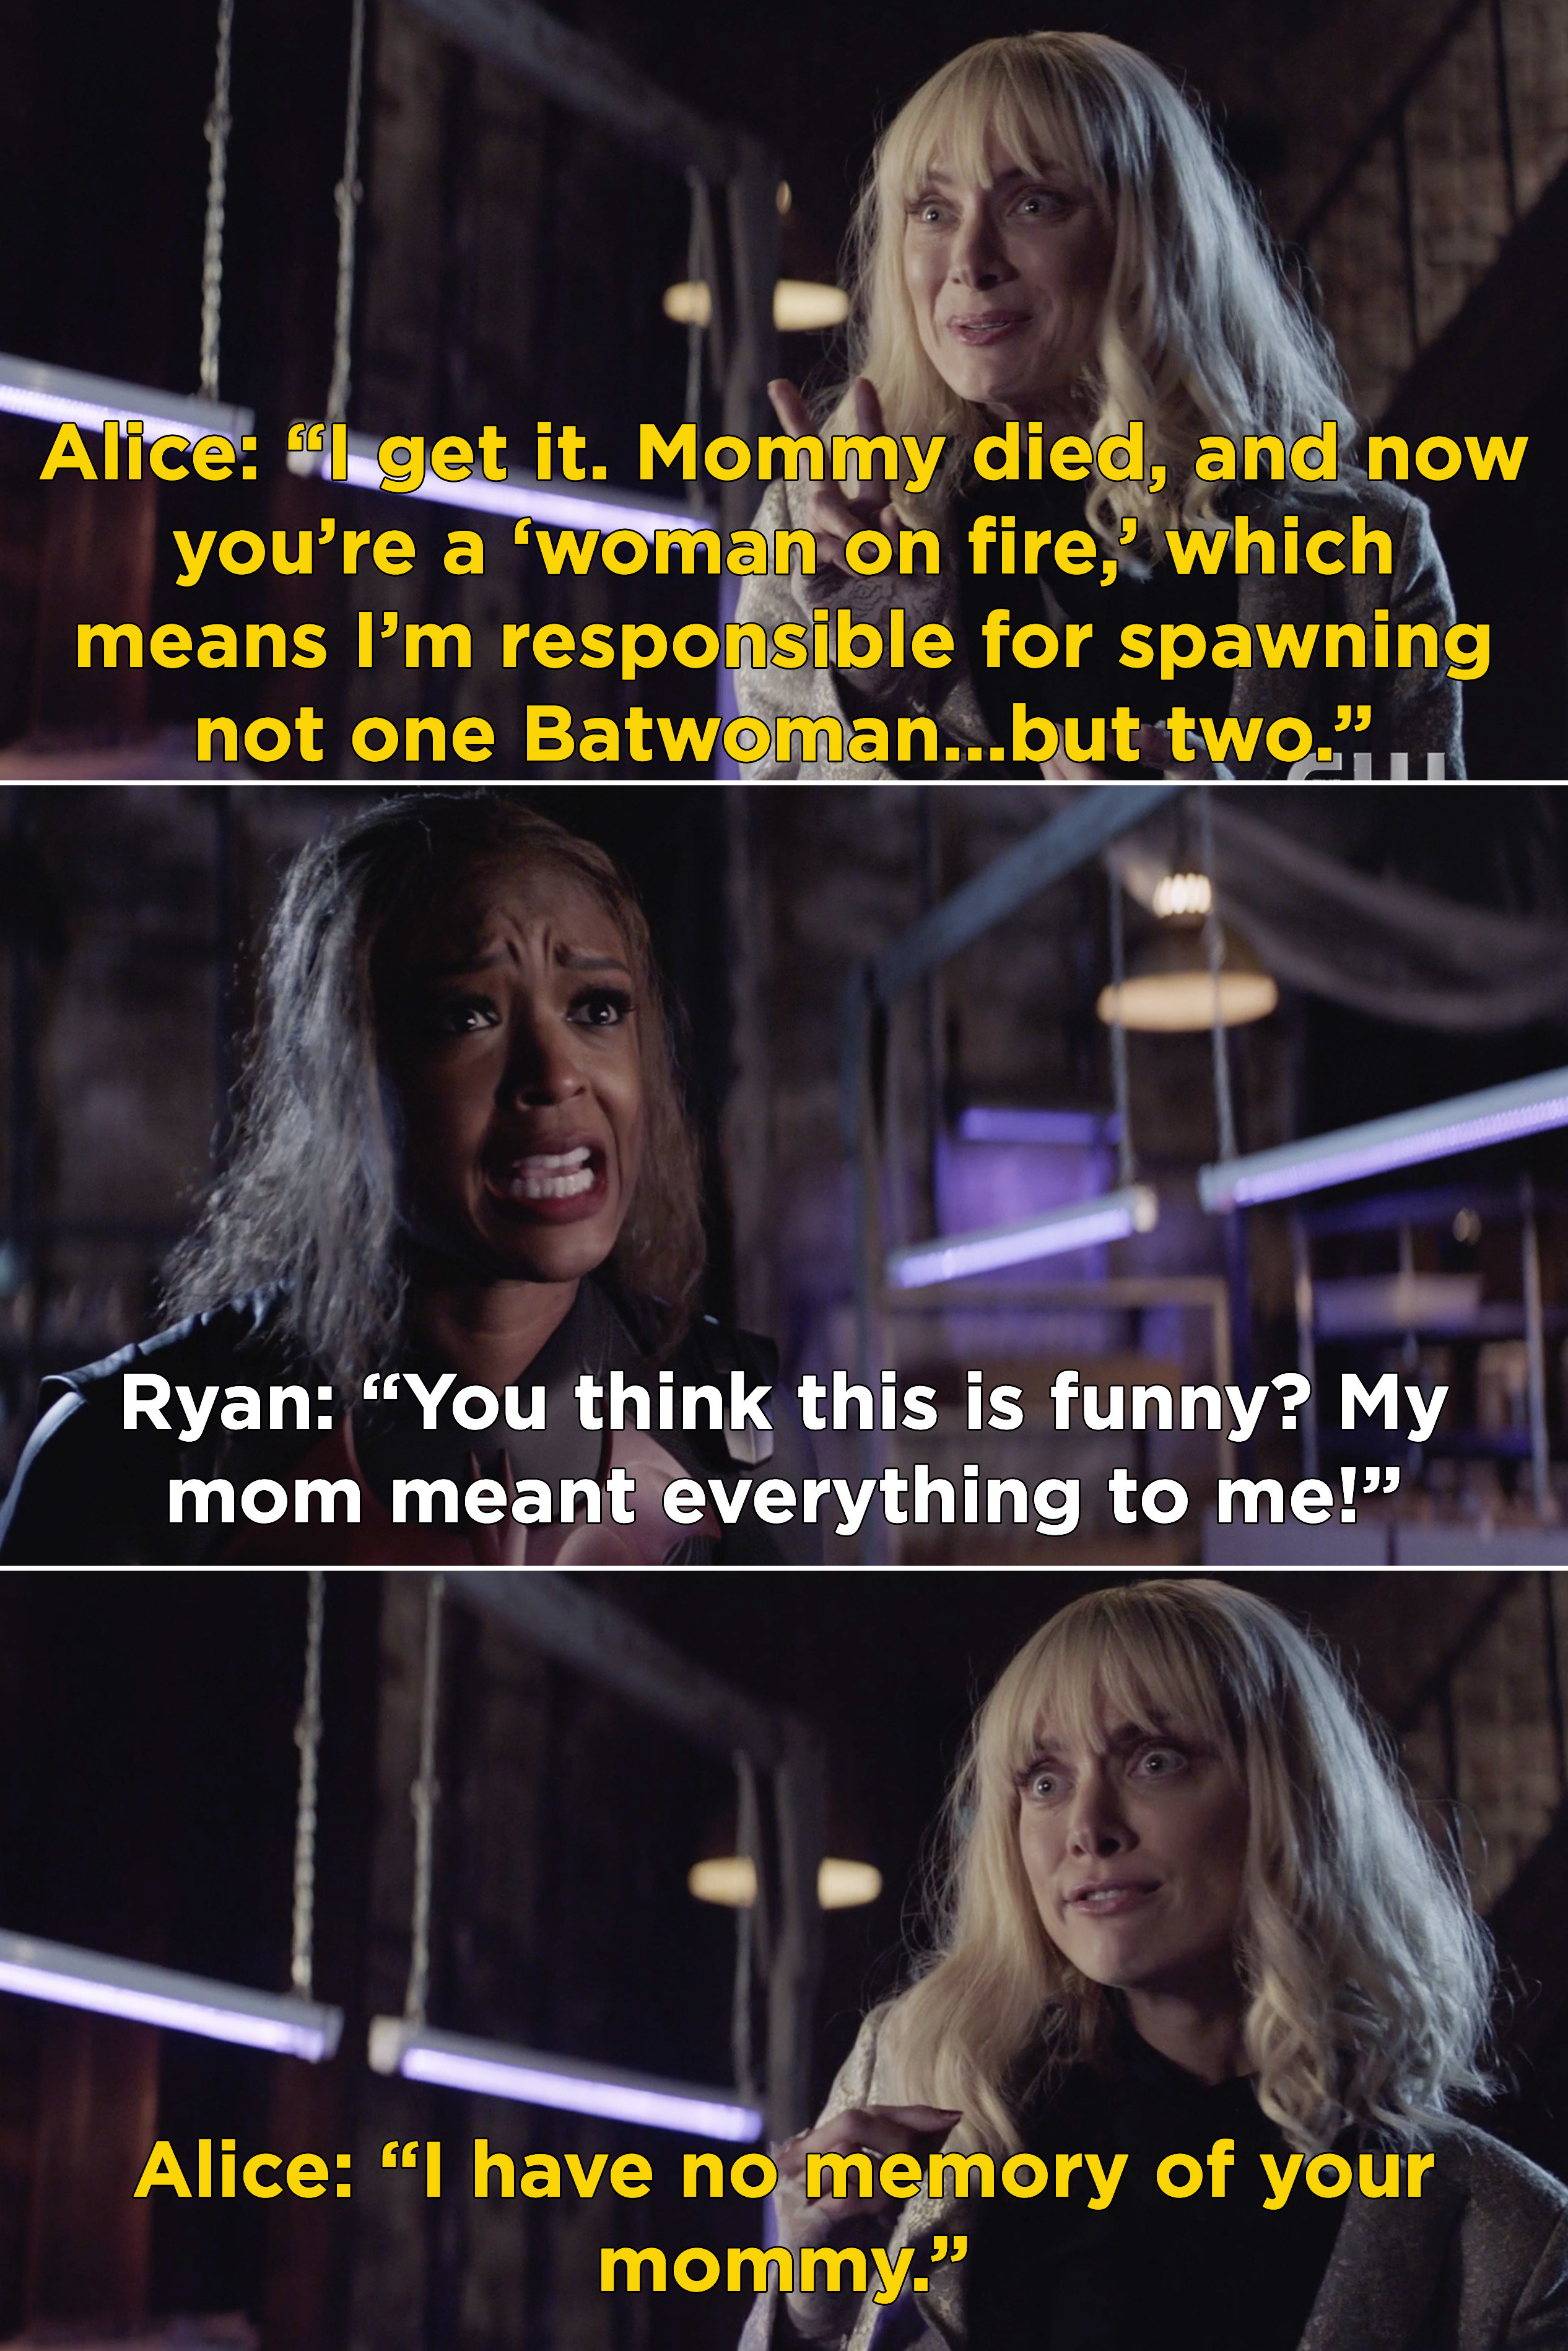 """Alice being proud that she's """"responsible for spawning not one Batwoman...but two"""""""